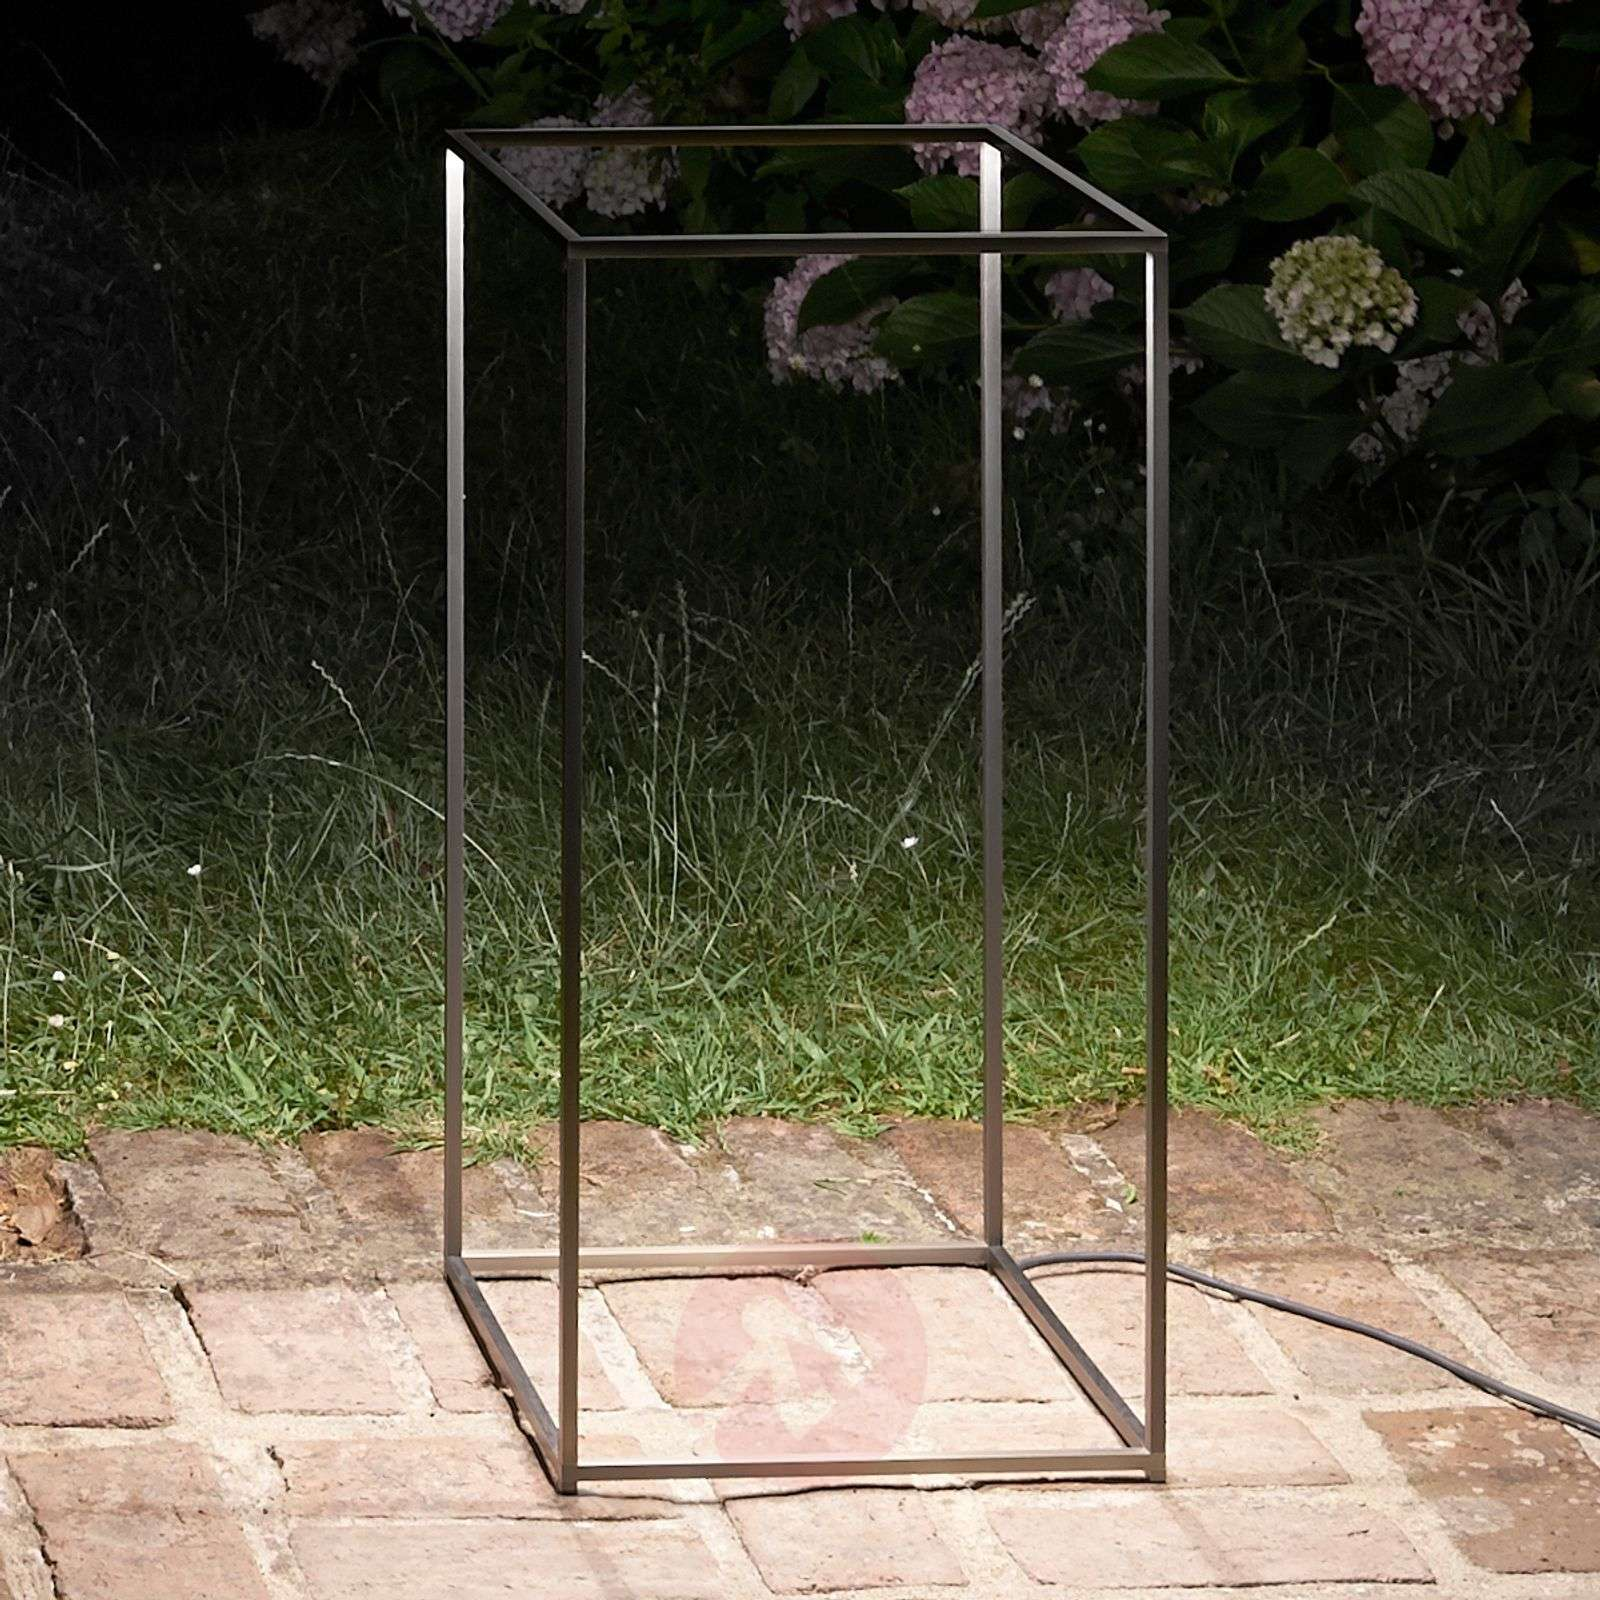 Design-buitenlamp Ipnos Outdoor van FLOS, LED-3510302-08